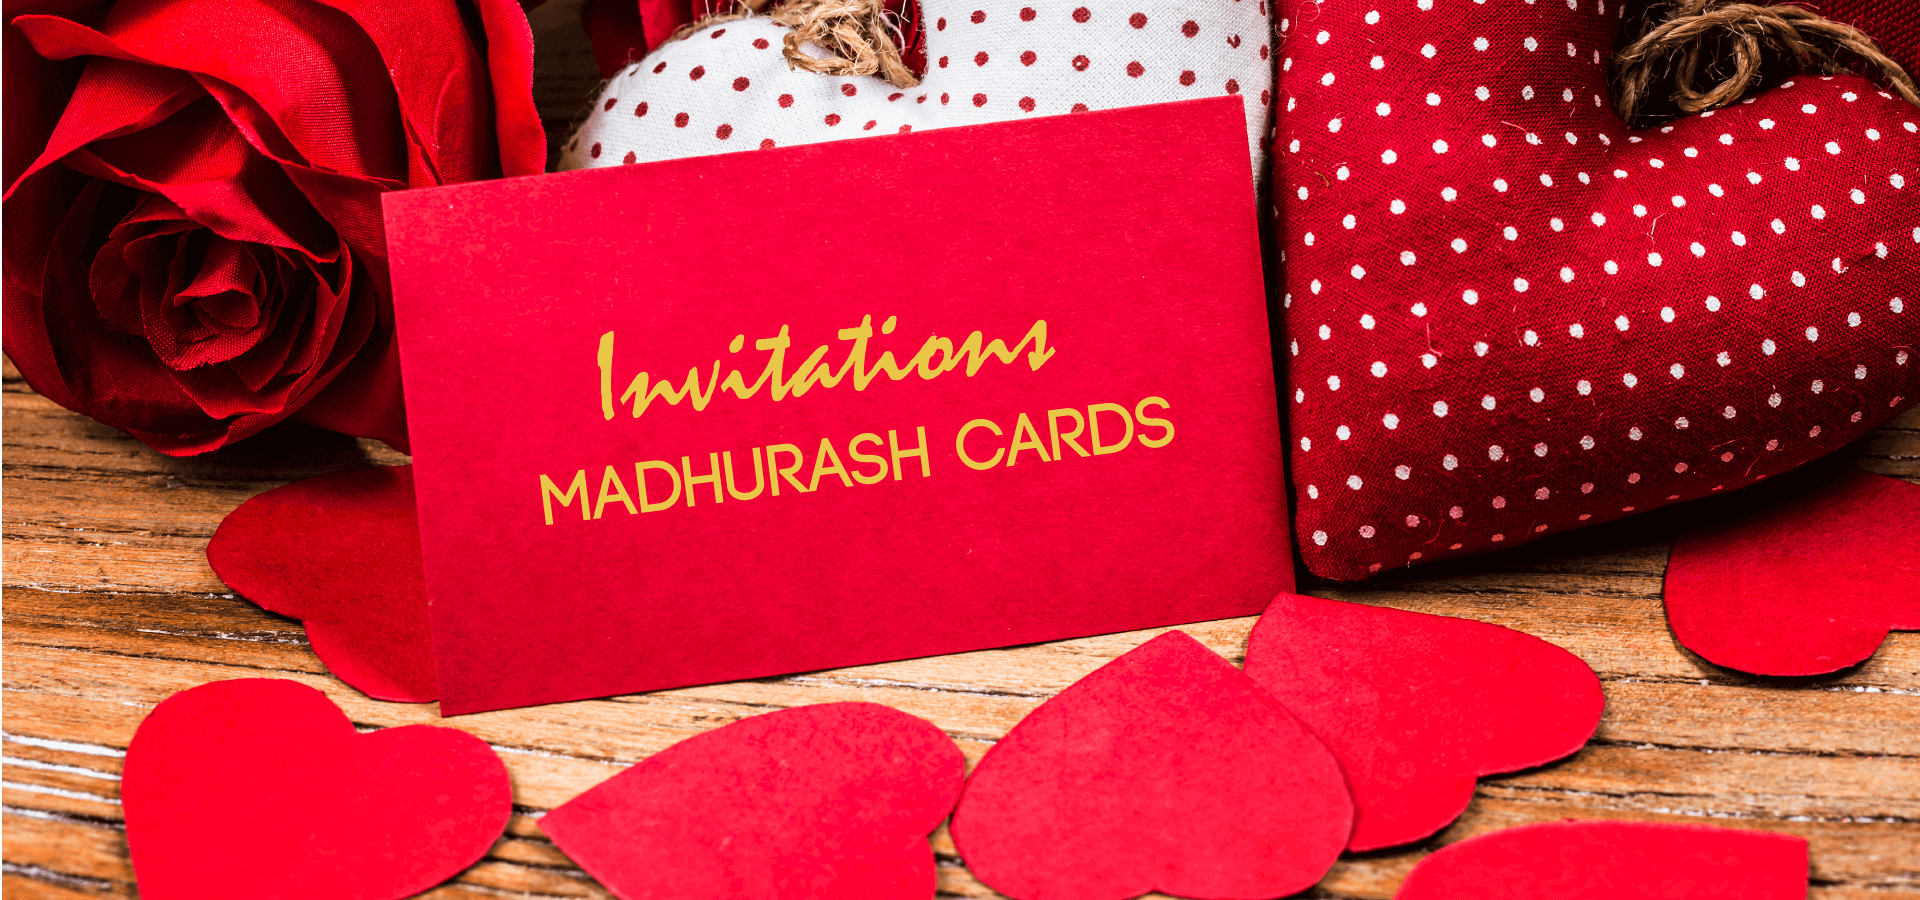 SSL Certificate Installation for Madhurash Cards